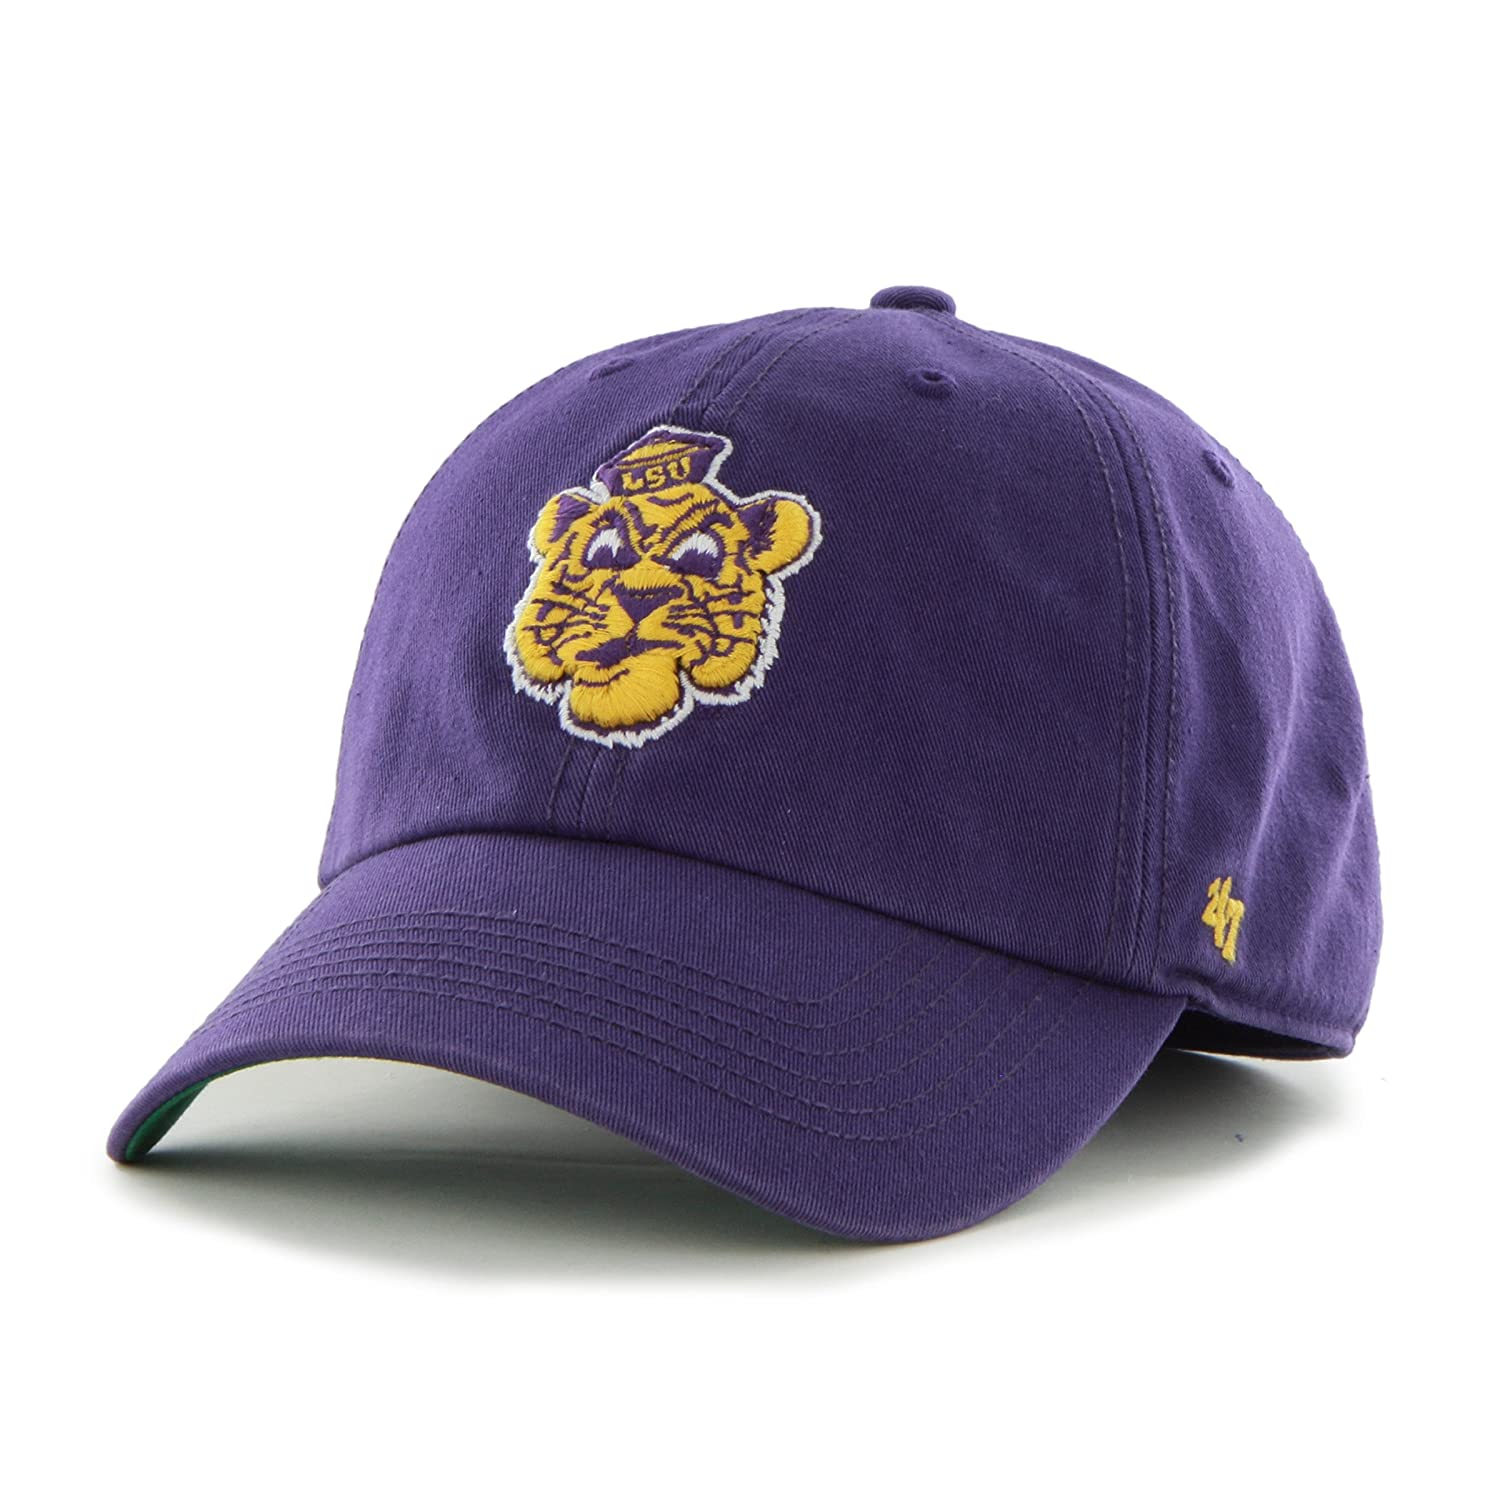 X-Large 47 NCAA Lsu Tigers Franchise Fitted Hat Purple 2